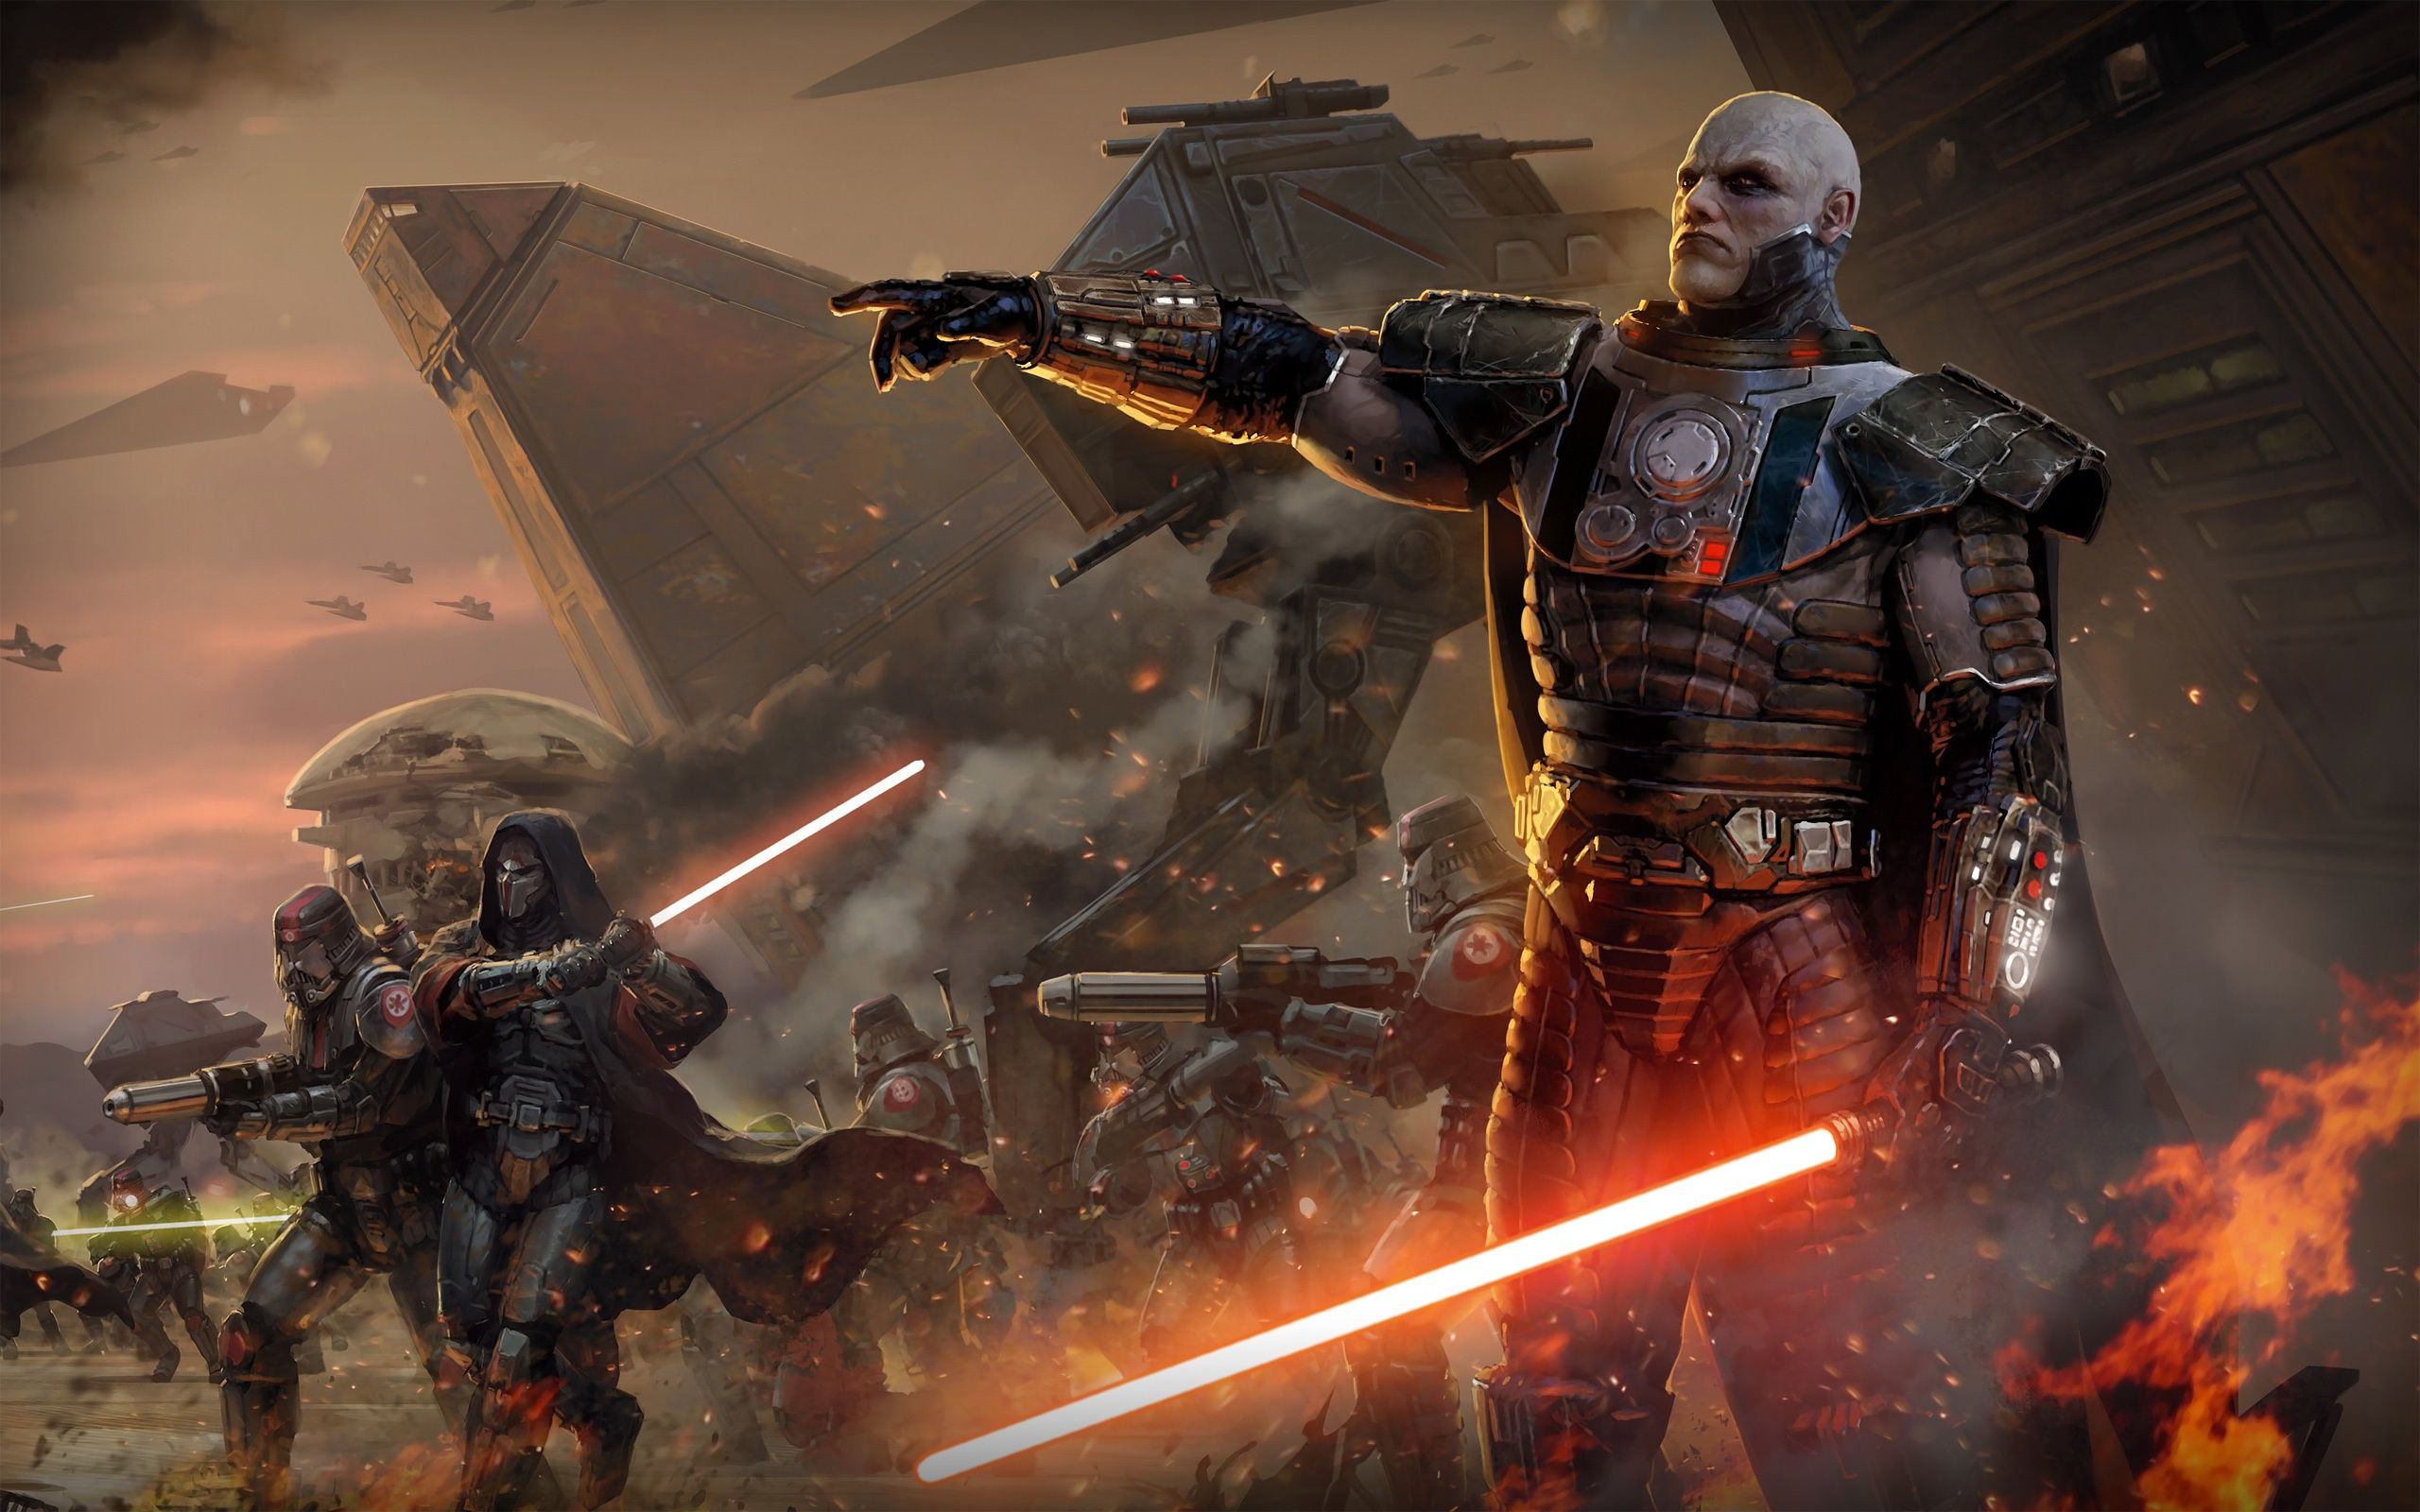 Star Wars The Old Republic Wallpapers Top Free Star Wars The Old Republic Backgrounds Wallpaperaccess